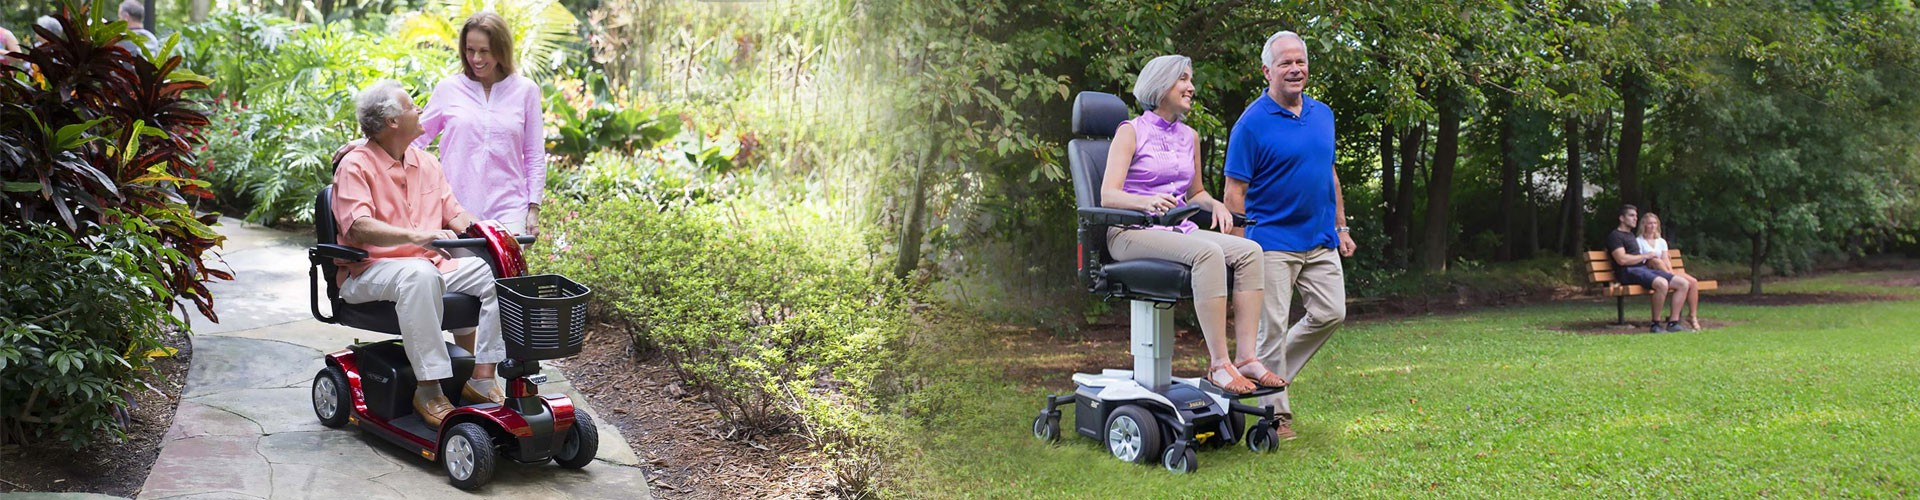 wheelchair equipment wicker chair cushion replacements ramps lifts hand controls vans mobility products the gulf coast